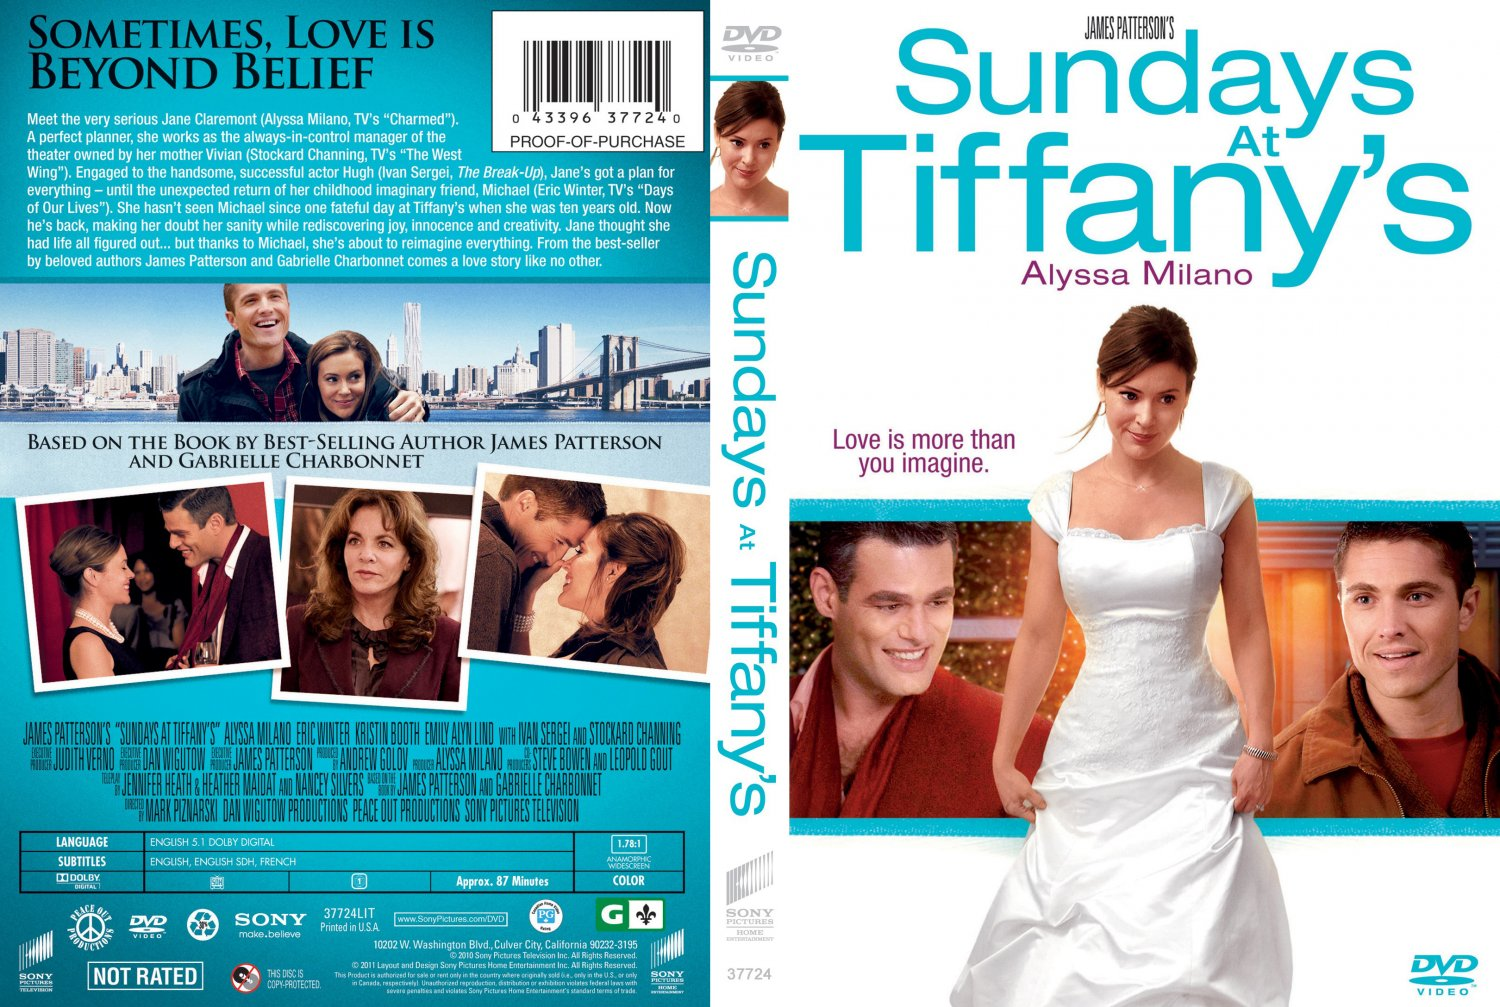 Sundays at Tiffany s - Movie DVD Scanned Covers - Sundays ...